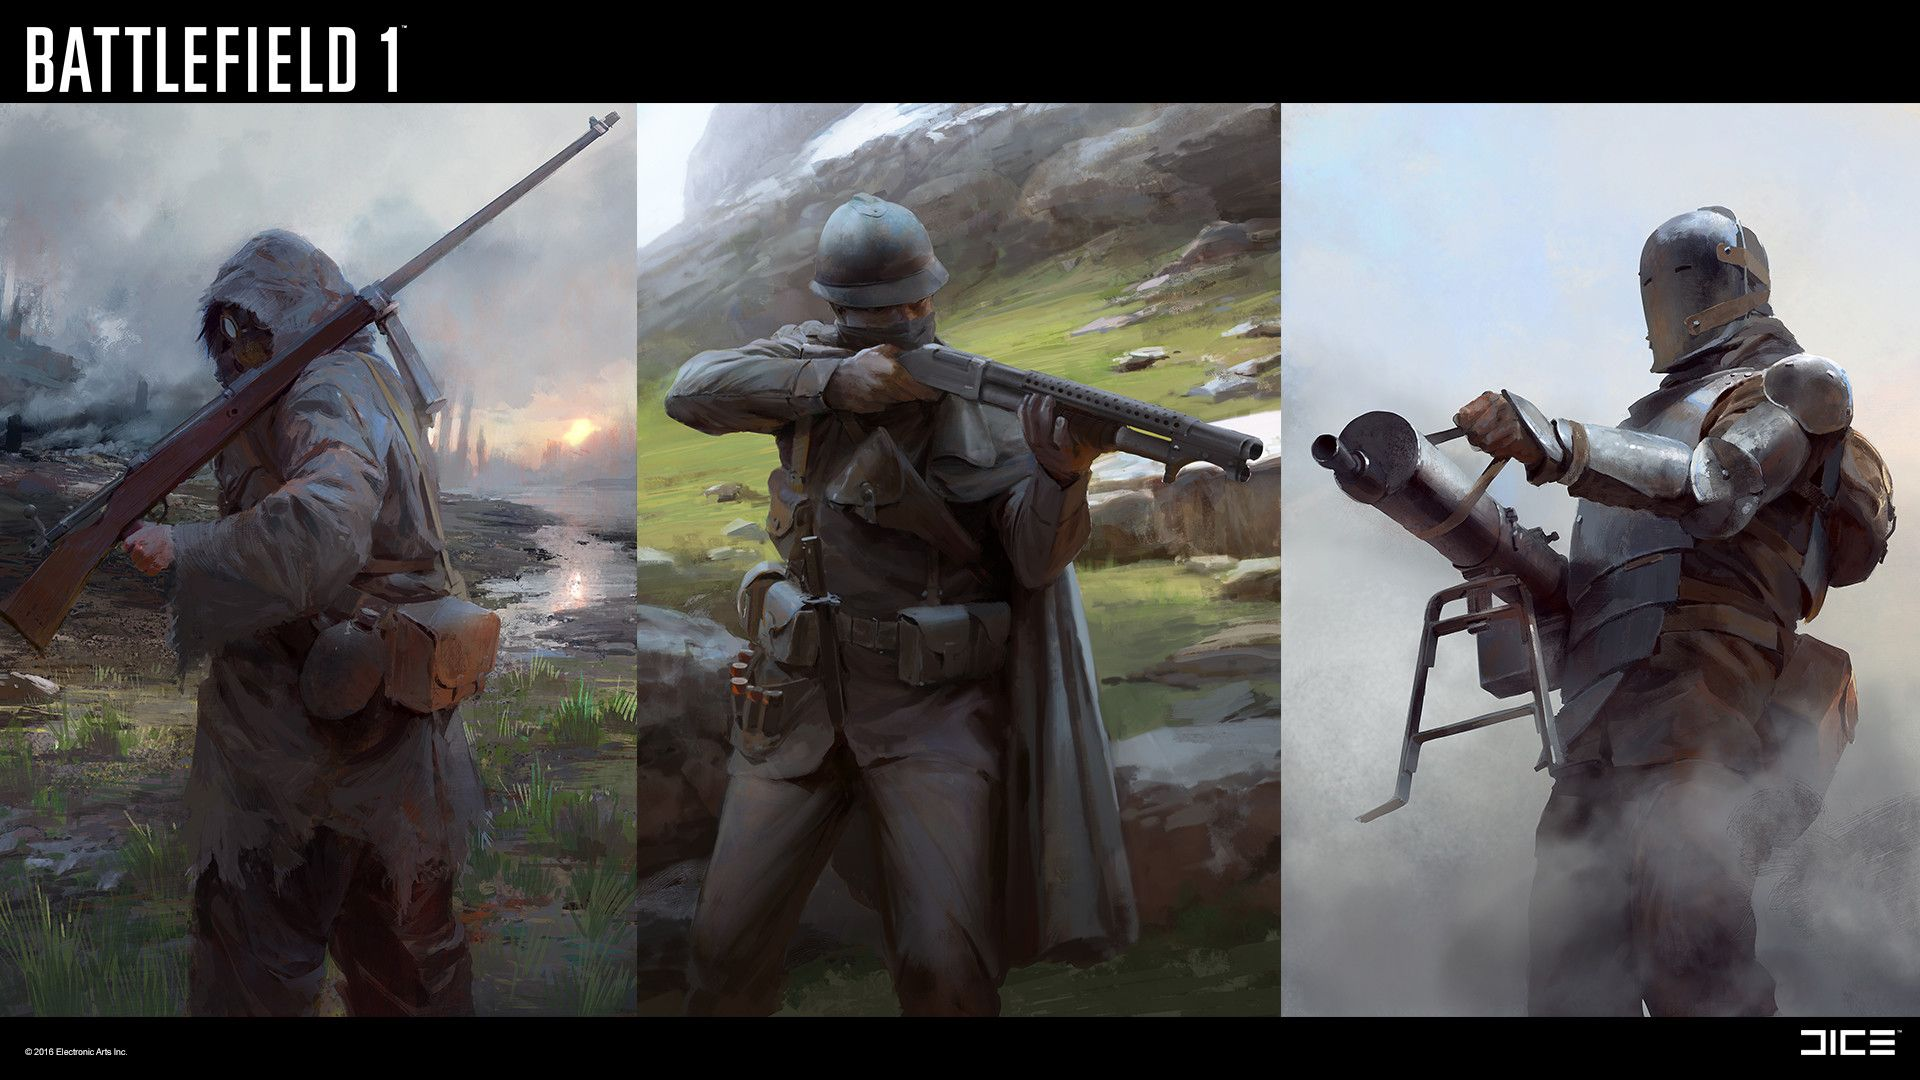 The Art Of Battlefield 1 | Games | Battlefield 1, Concept art world